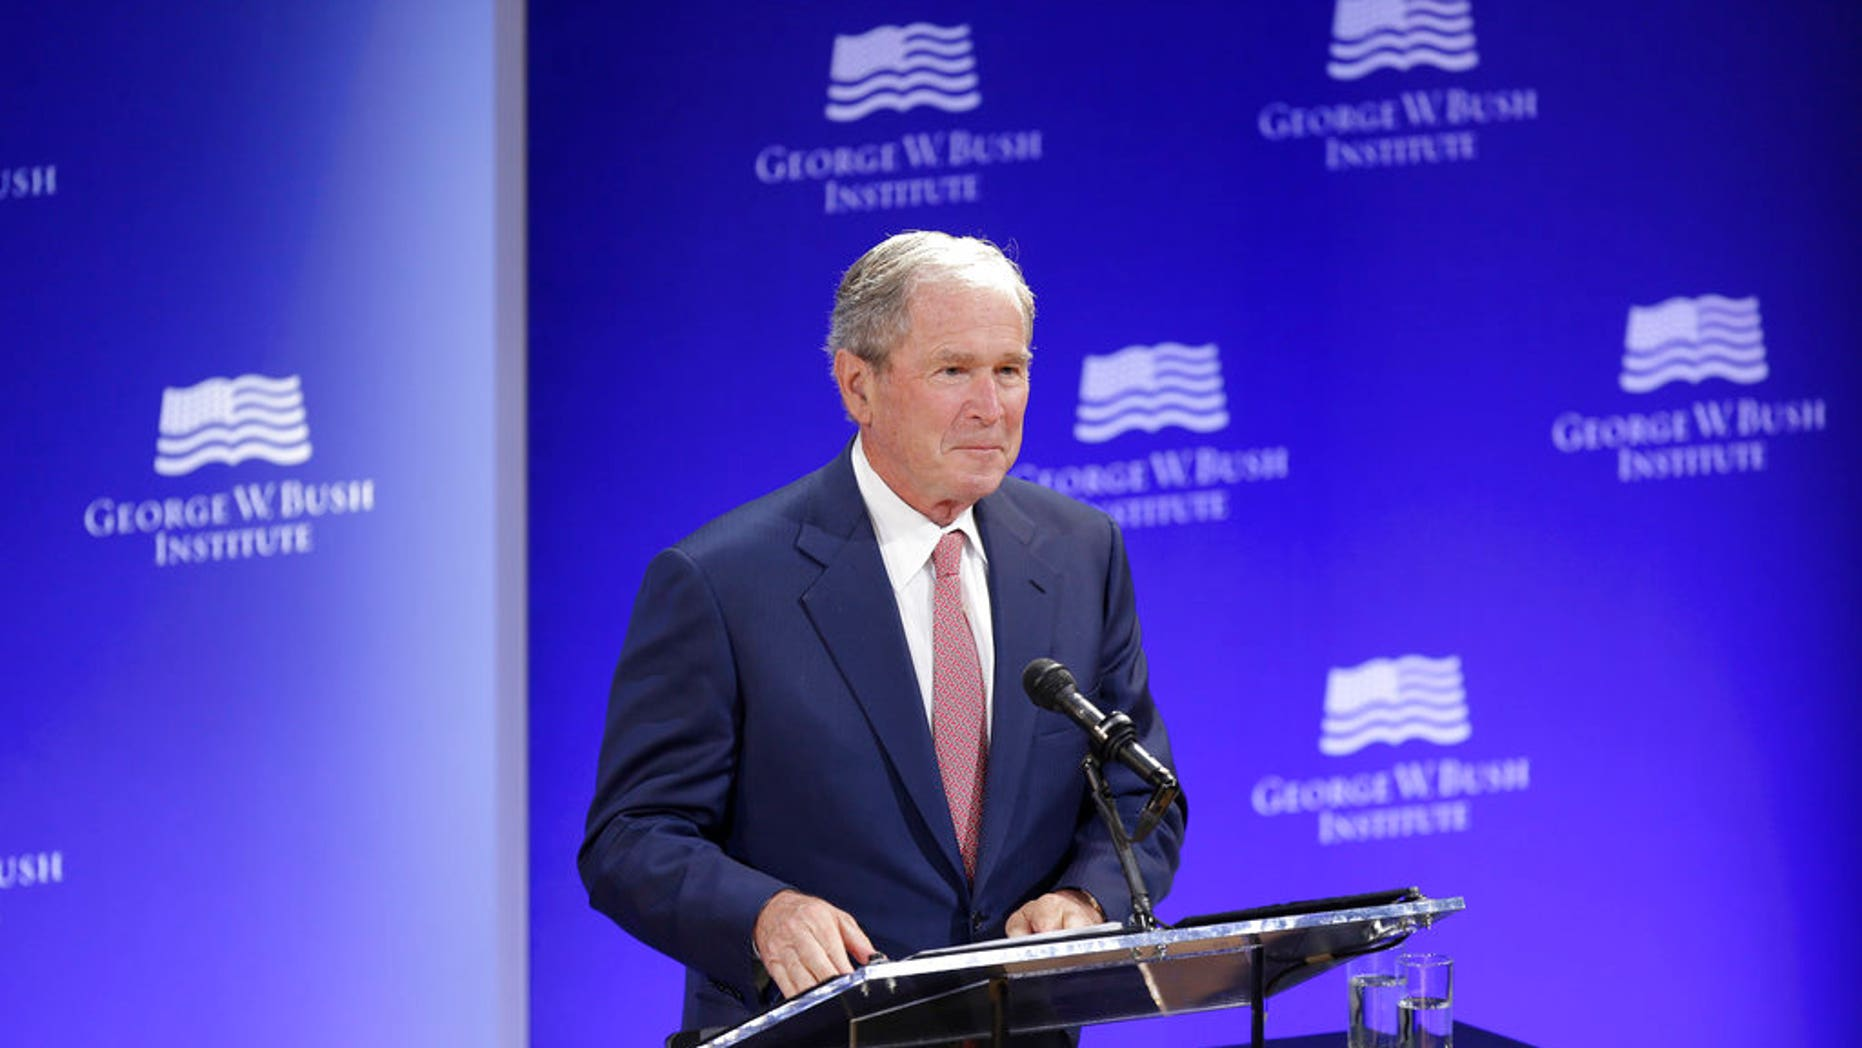 Former President George W. Bush speaks at a forum sponsored by the George W. Bush Institute in New York, Thursday, Oct. 19, 2017.